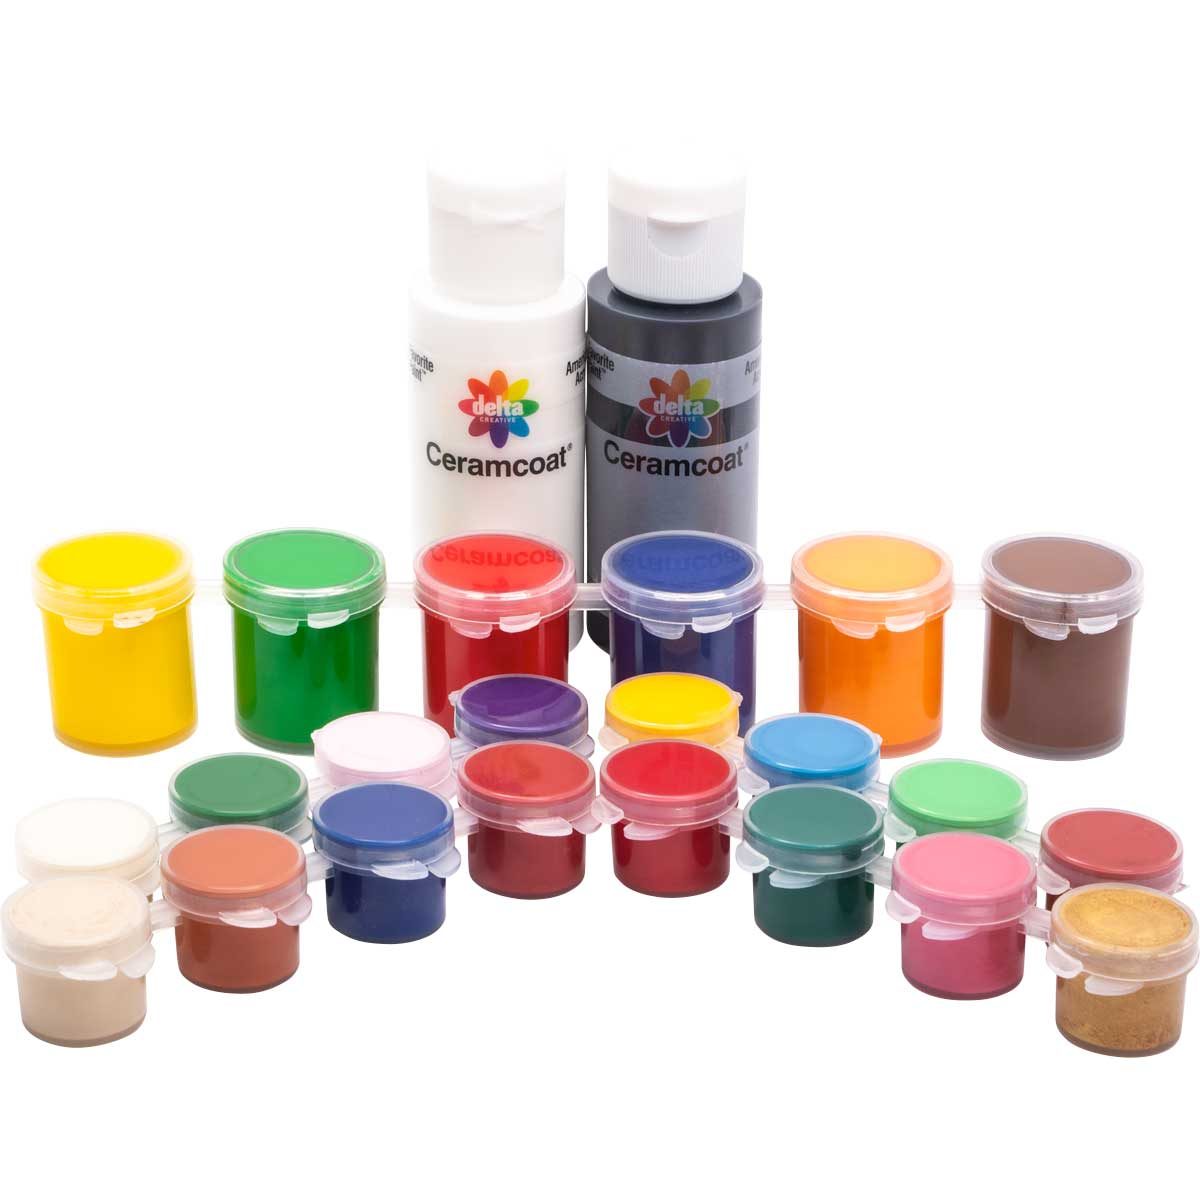 Delta Ceramcoat ® Paint Superpack Set - Basic, 24 Colors - 029400056